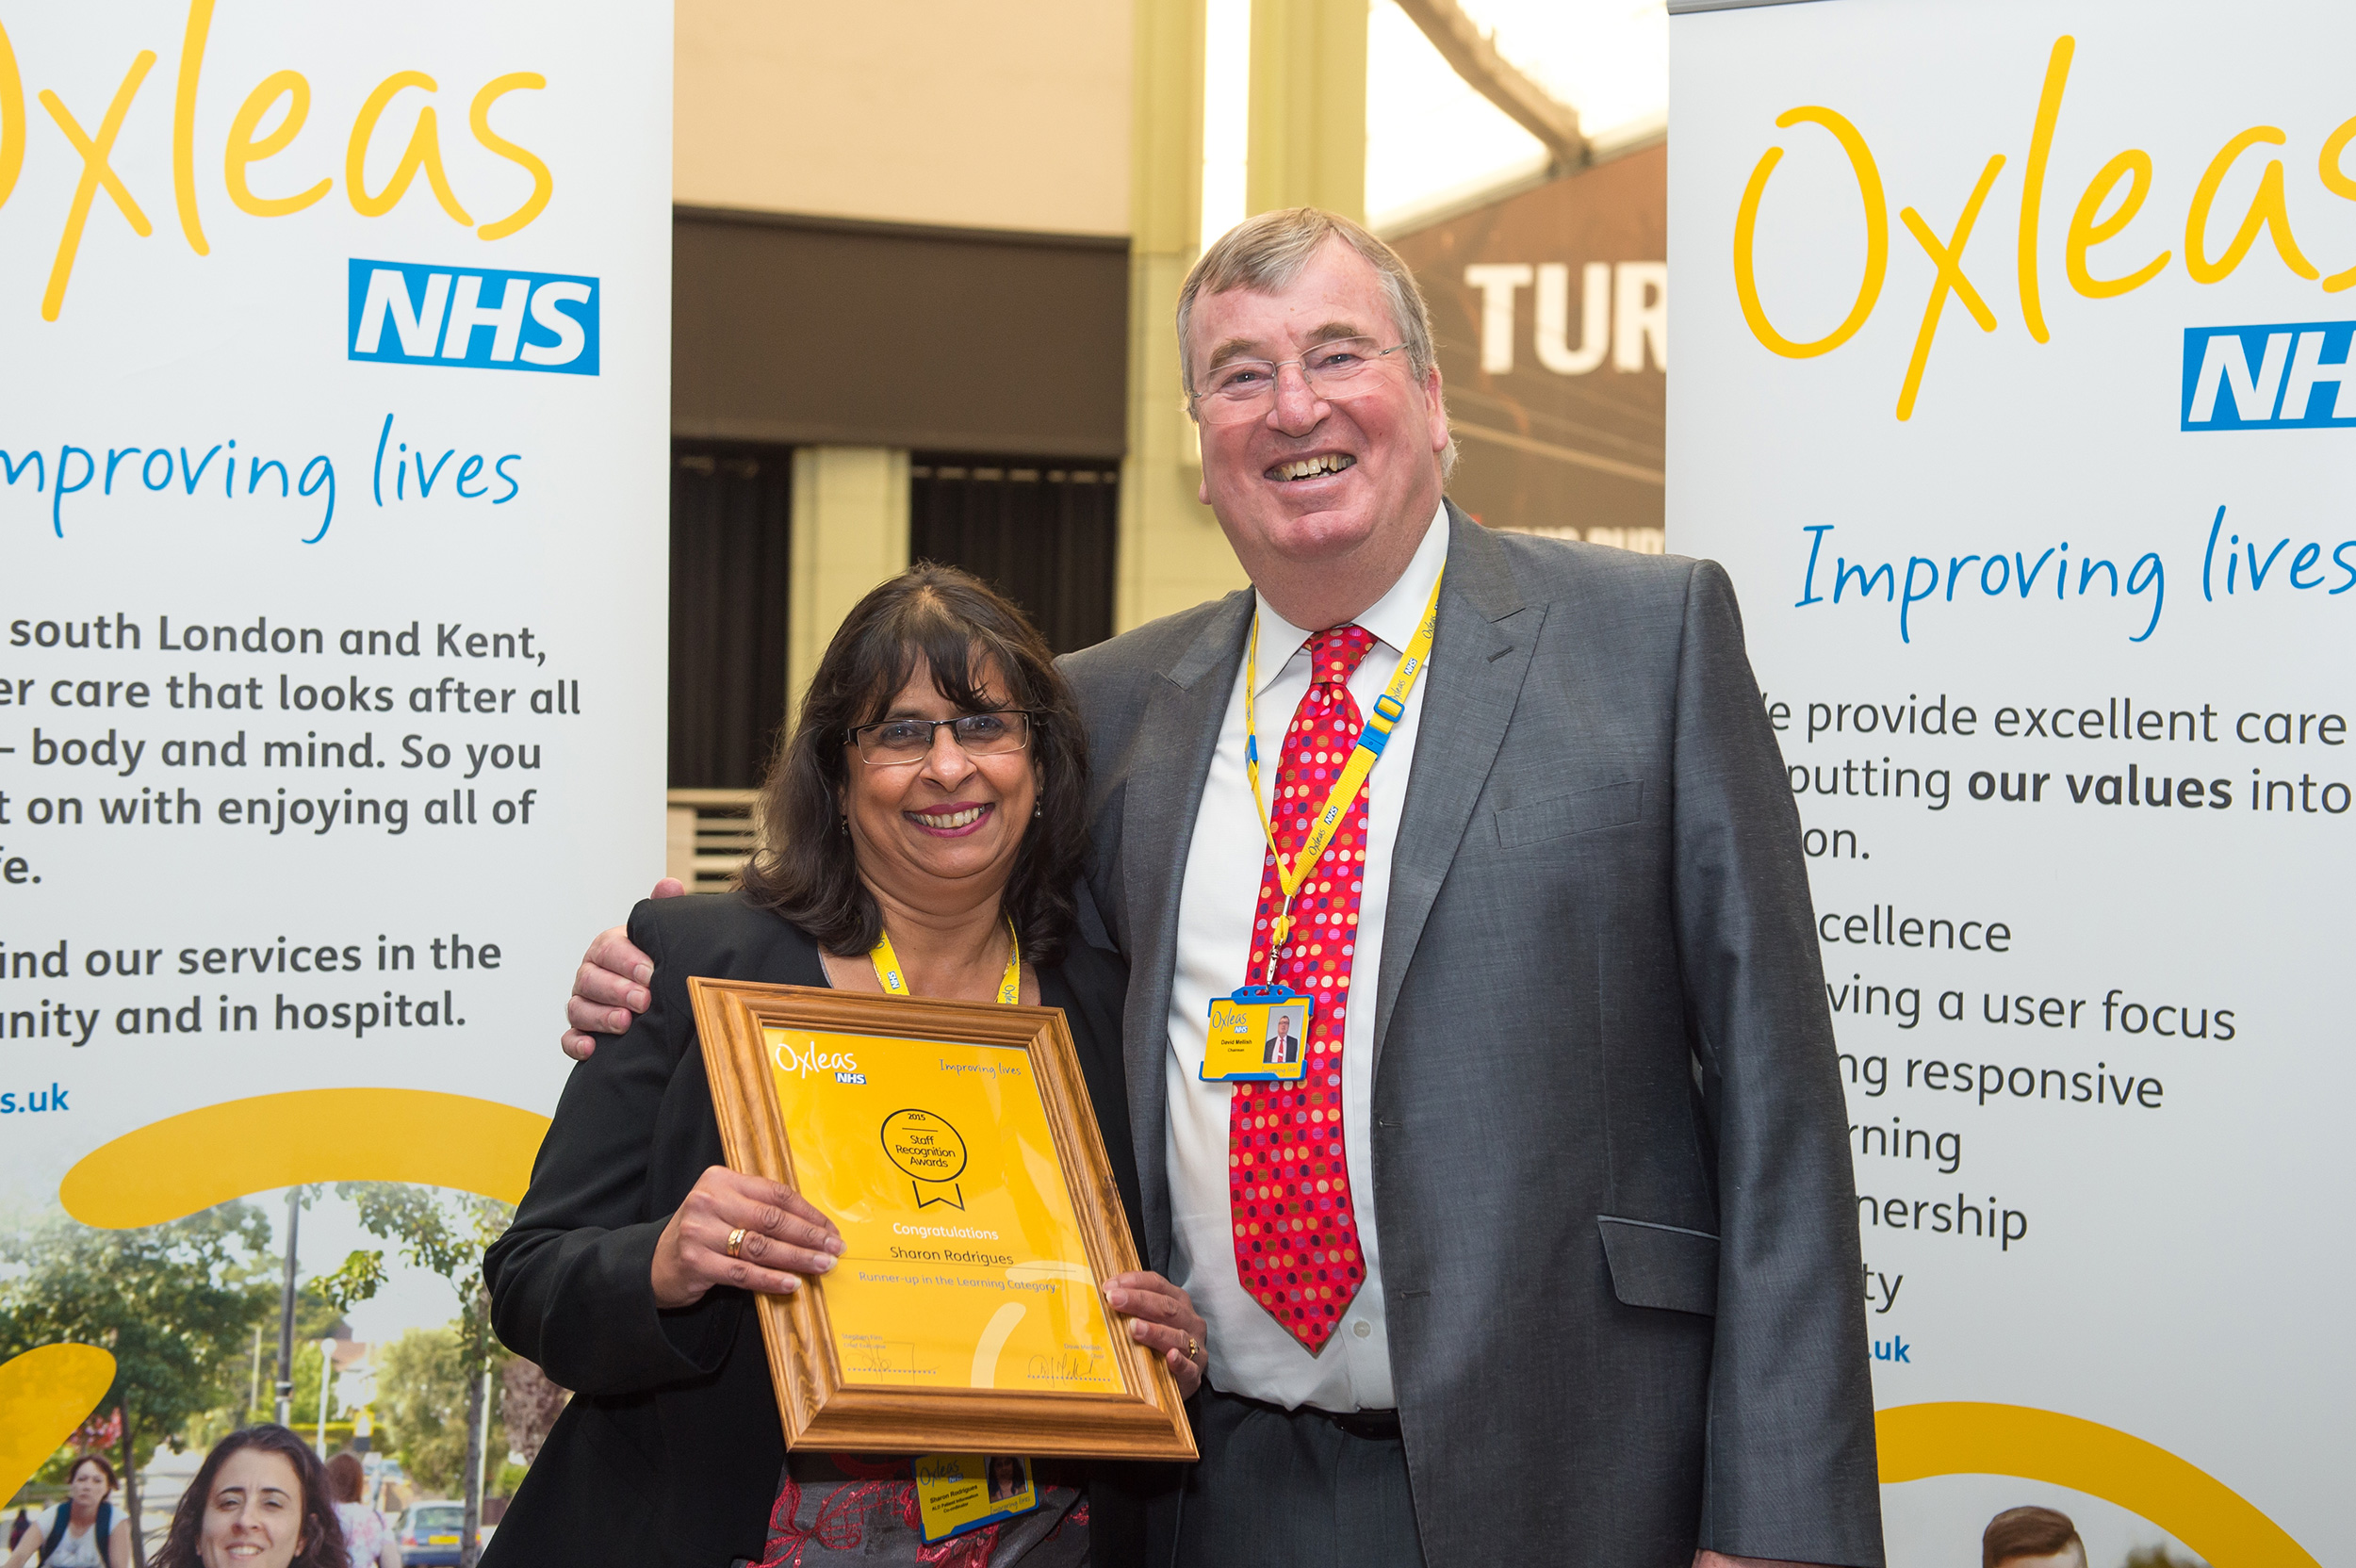 Staff Recognition Awards 2015: Runner up - Learning: Sharon Rodrigues, Patient Information Project Worker